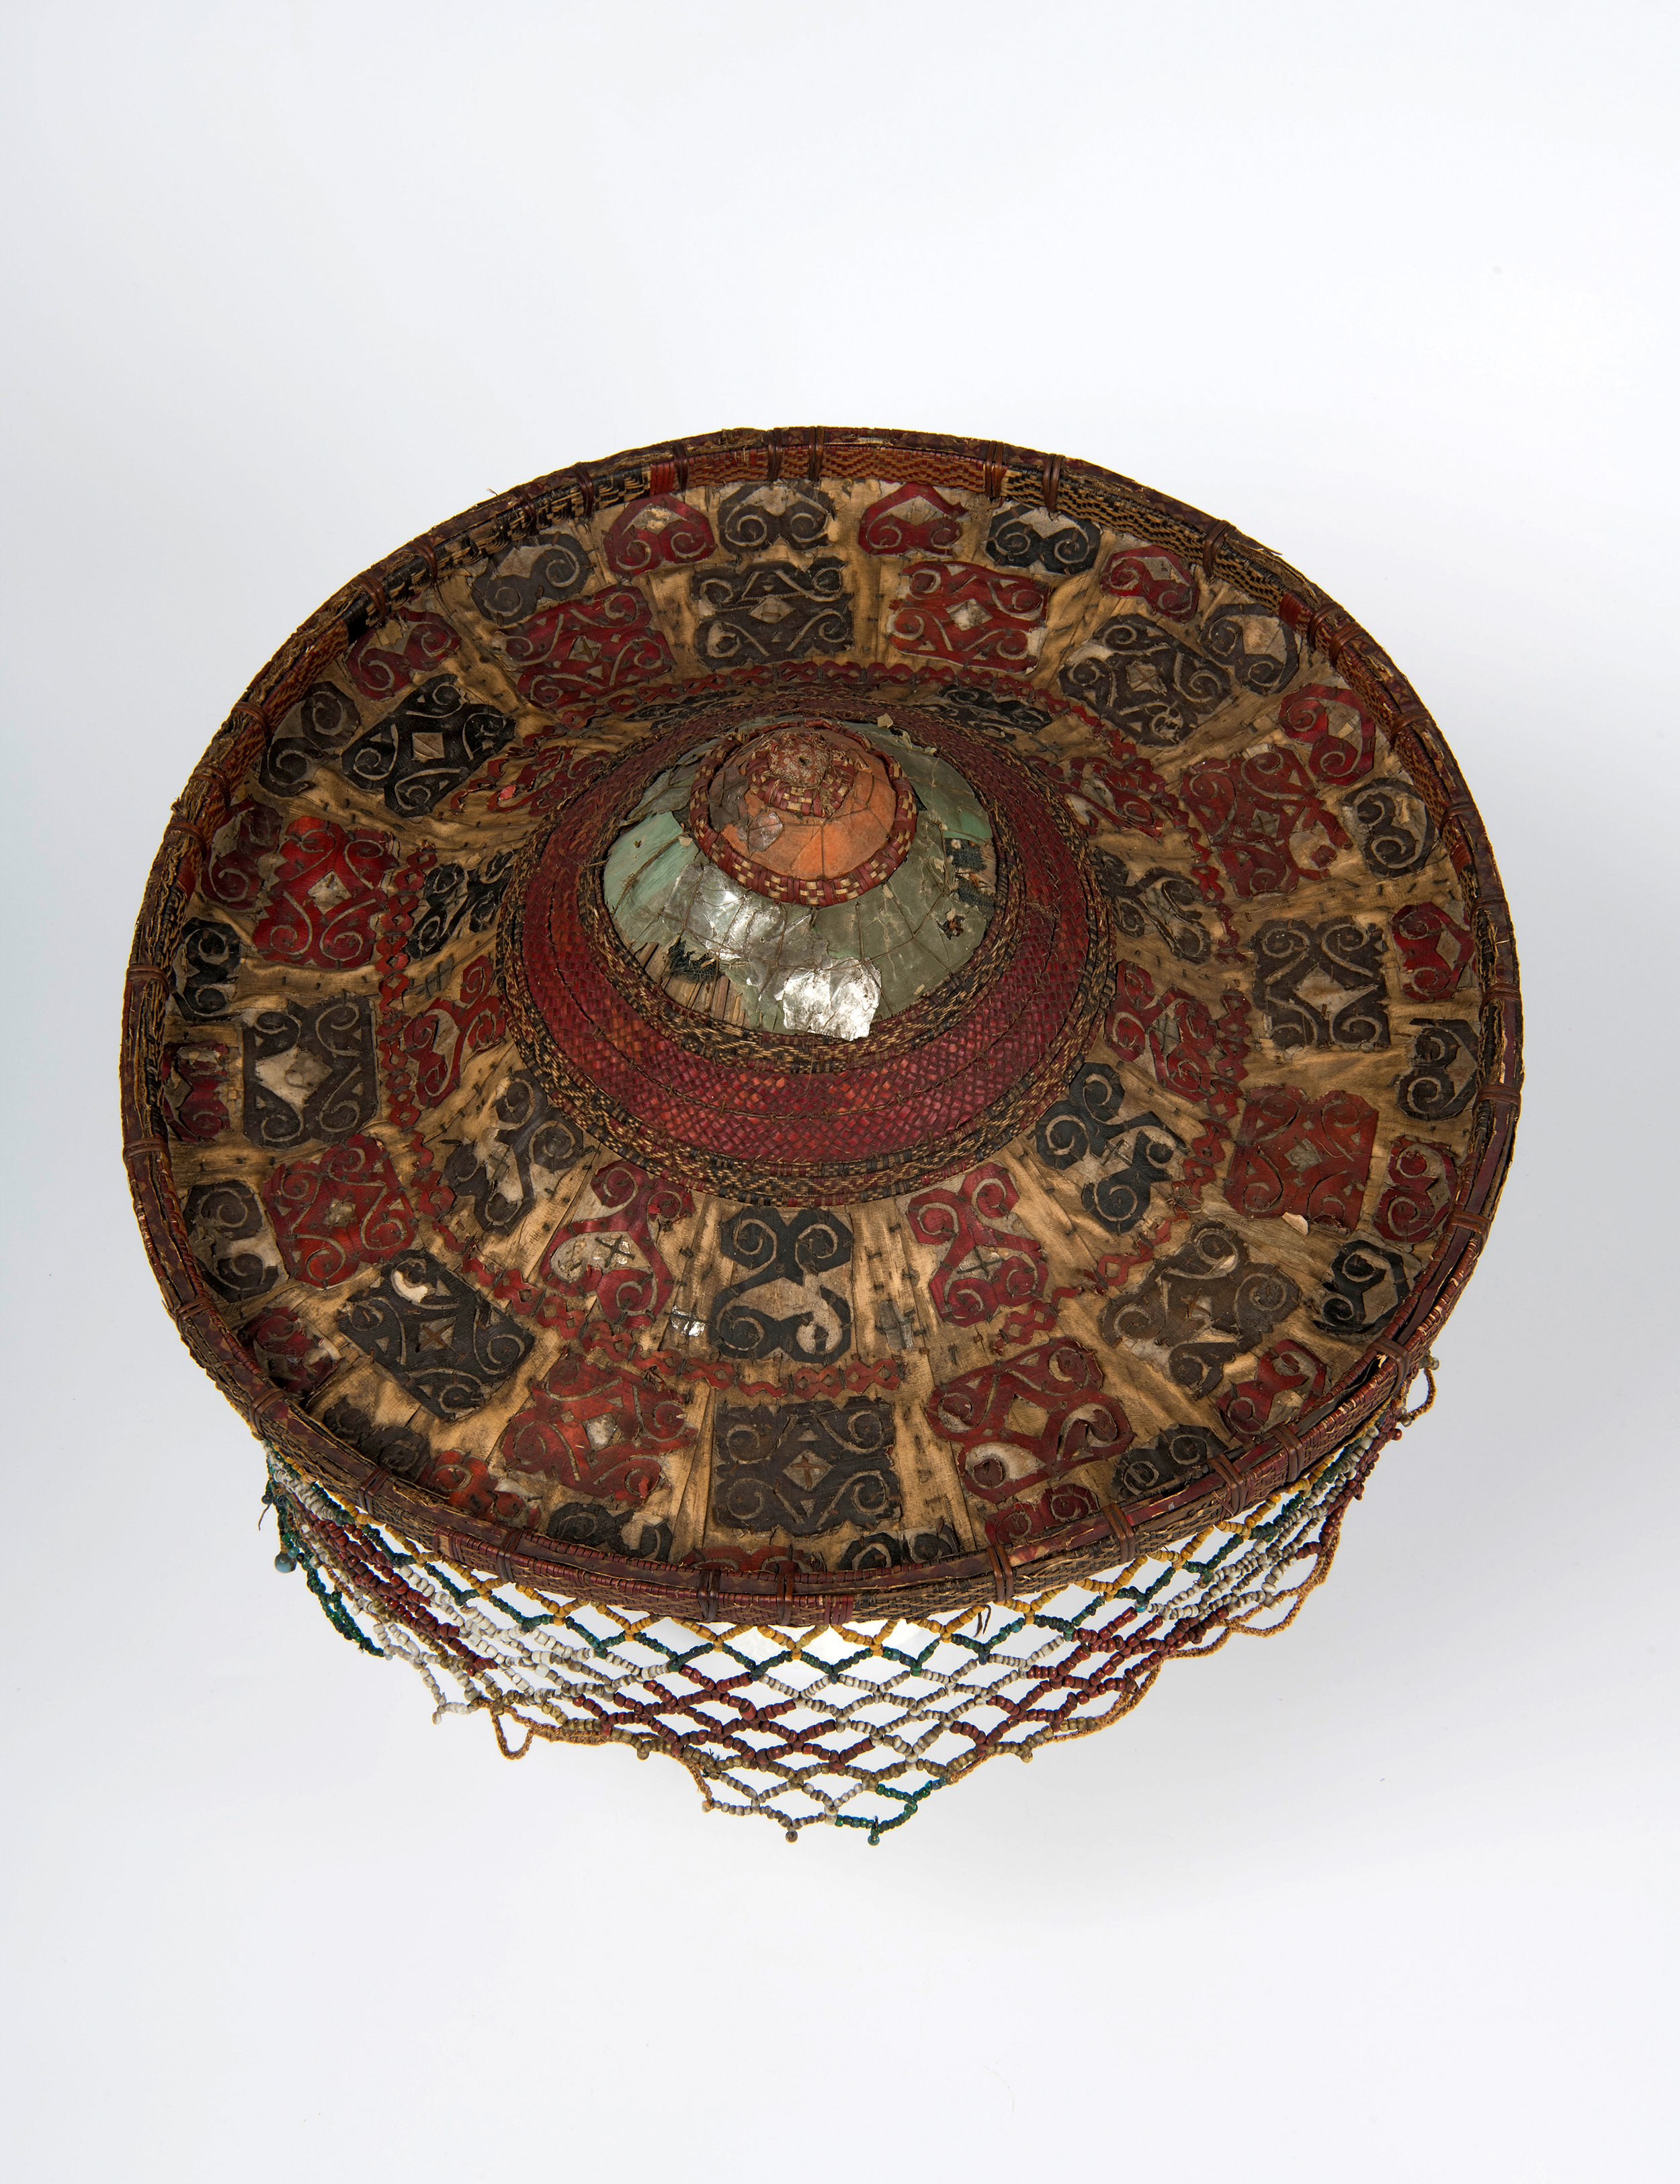 Priest hat - Tindung; rattan, mica, cotton, beads; Sulawesi; before 1884. Collection of the National Museum of World Cultures Foundation